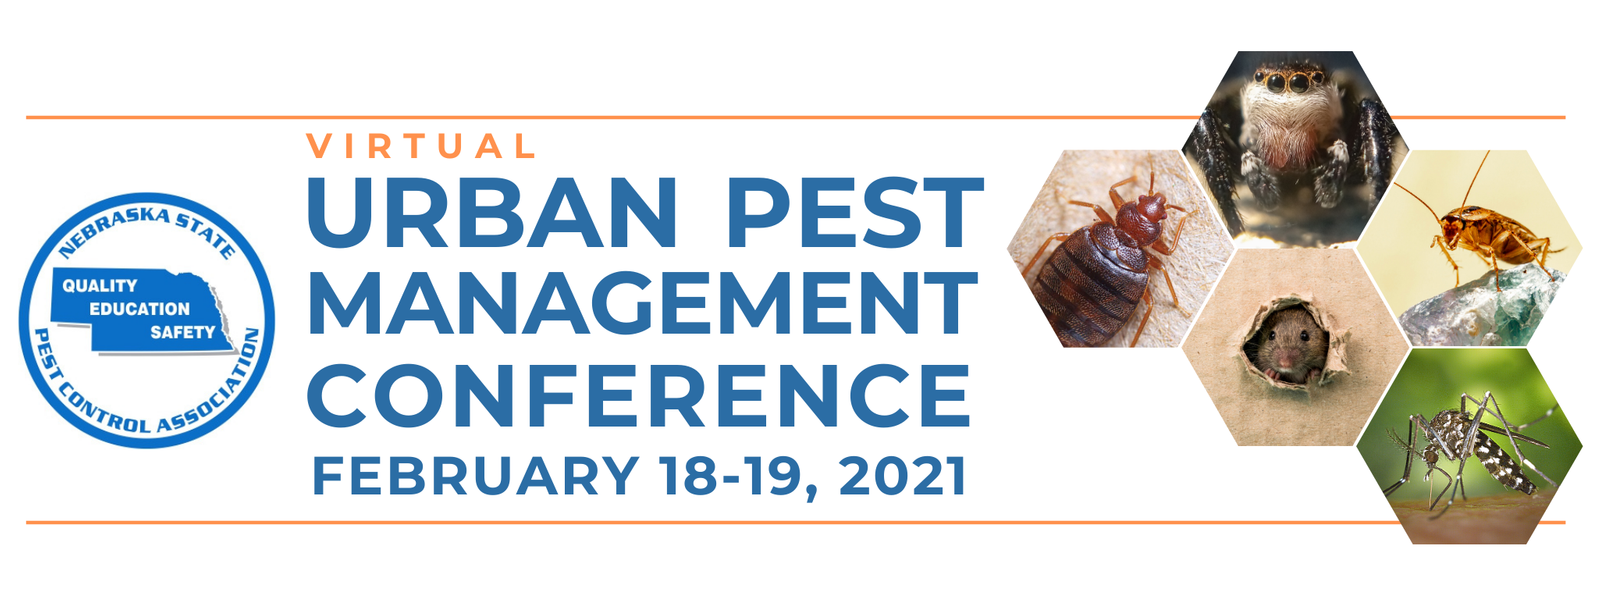 Nebraska Urban Pest Management Conference